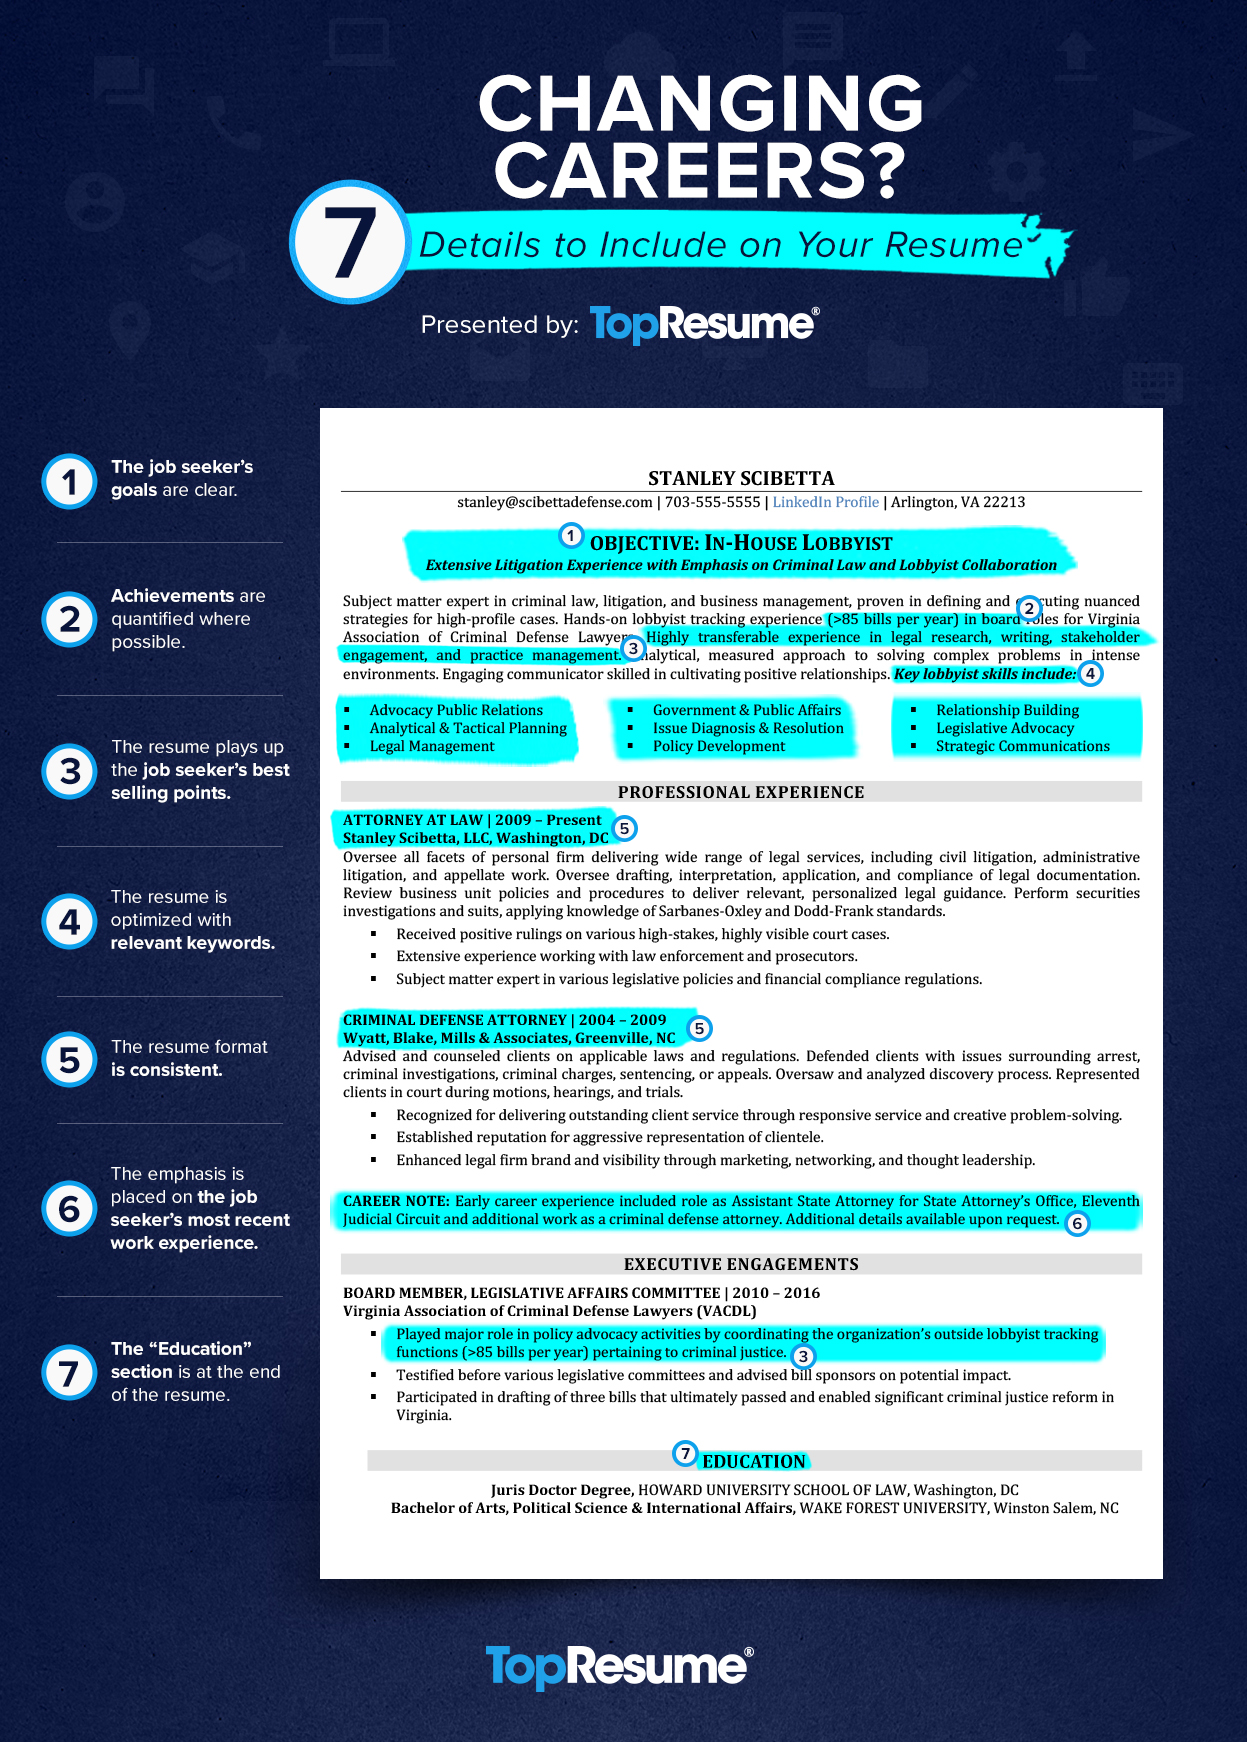 1 the job seekers goals are clear - Top Resume